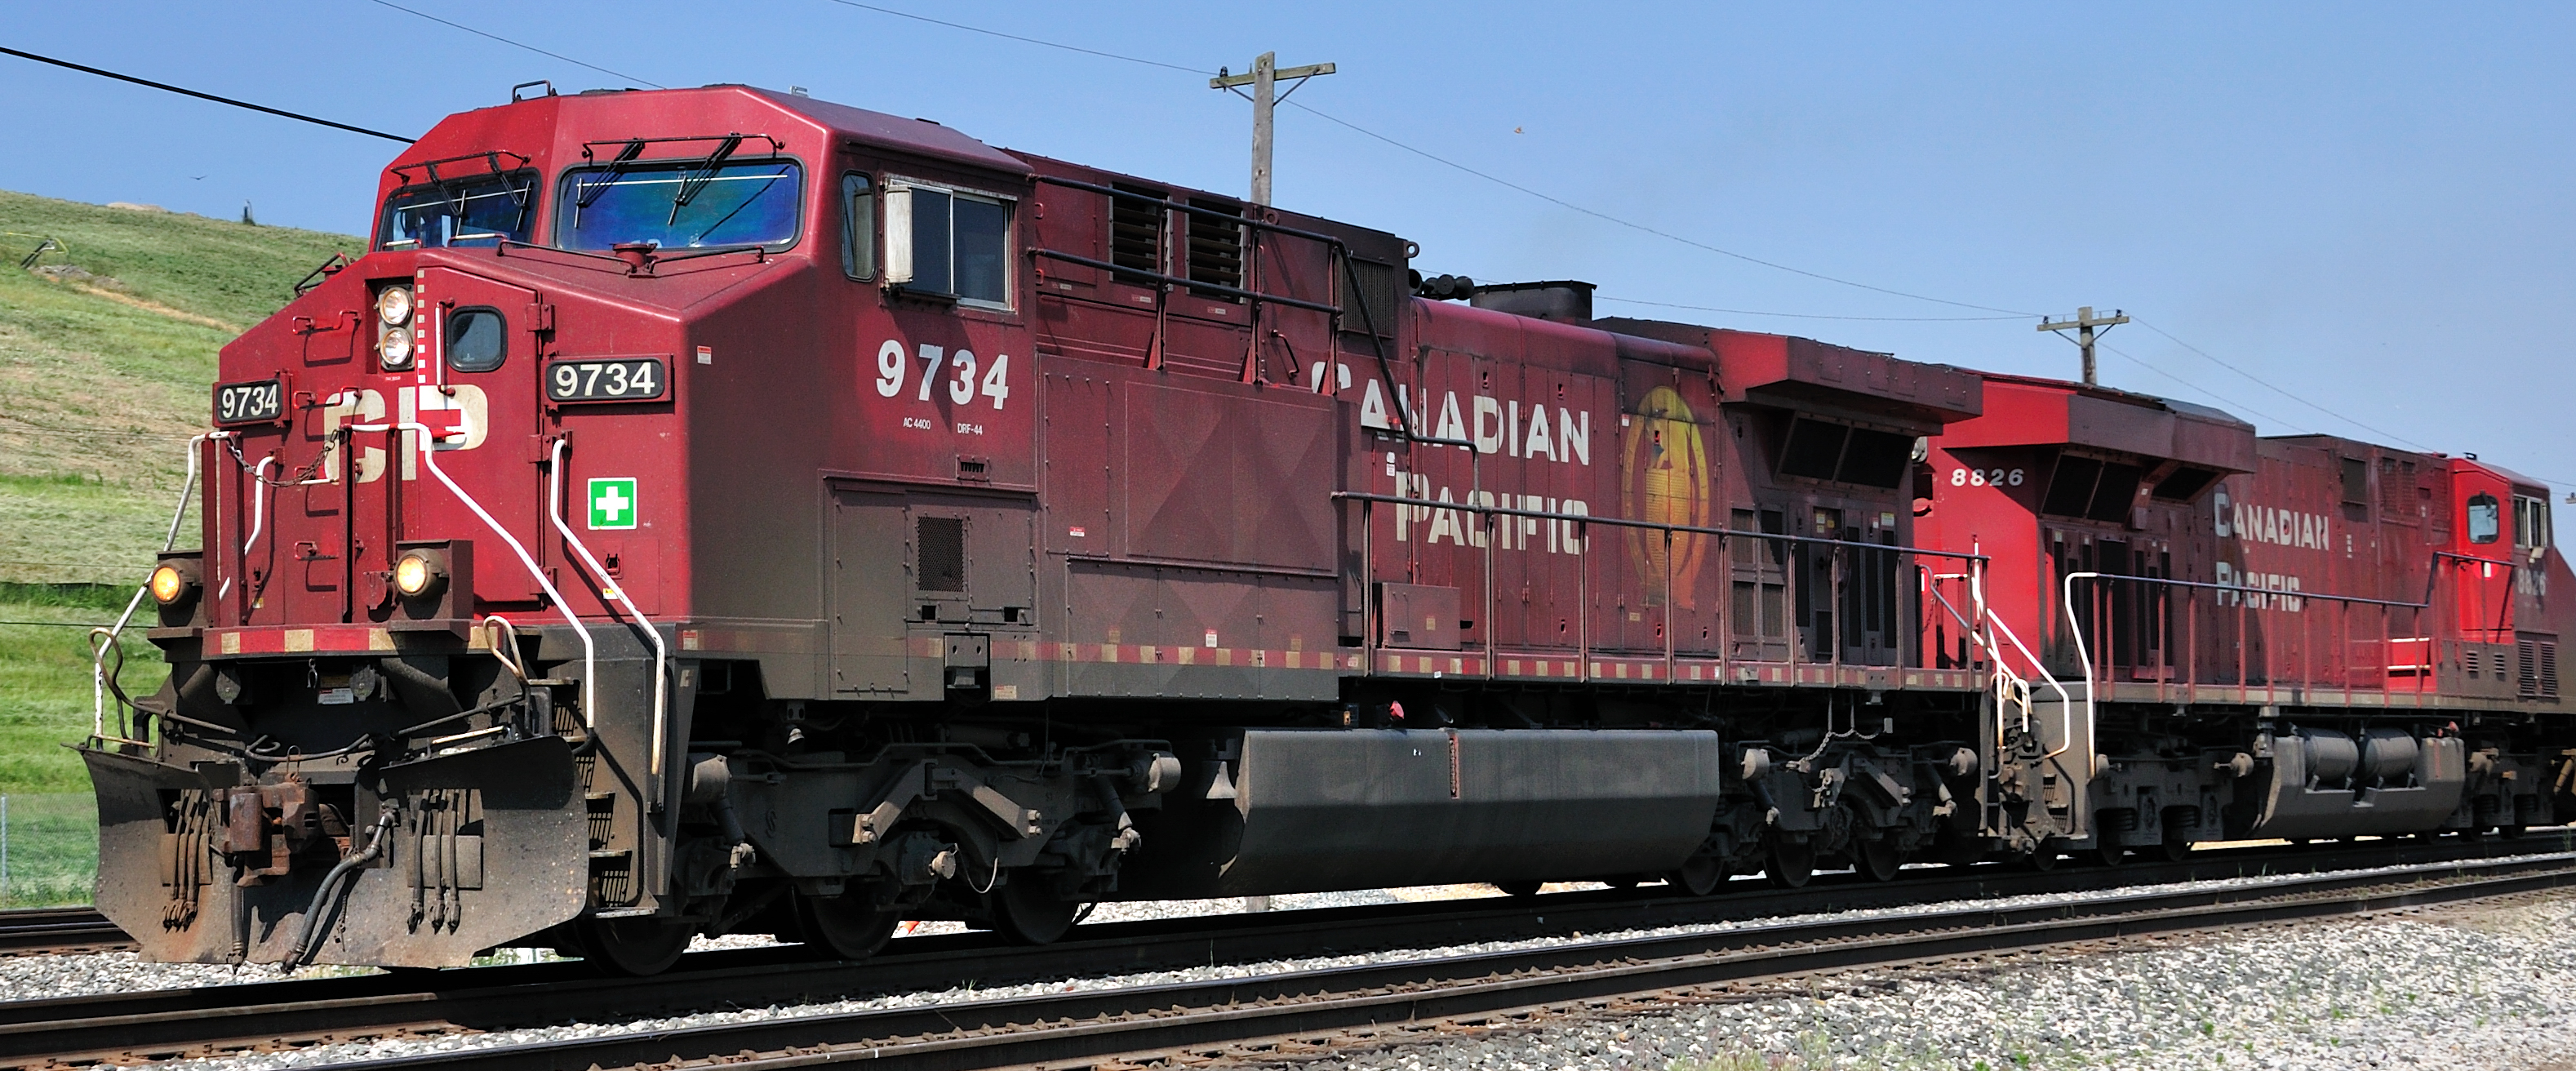 The new rapid city, pierre and eastern railroad (rcpe) is prepared to take over the former dm